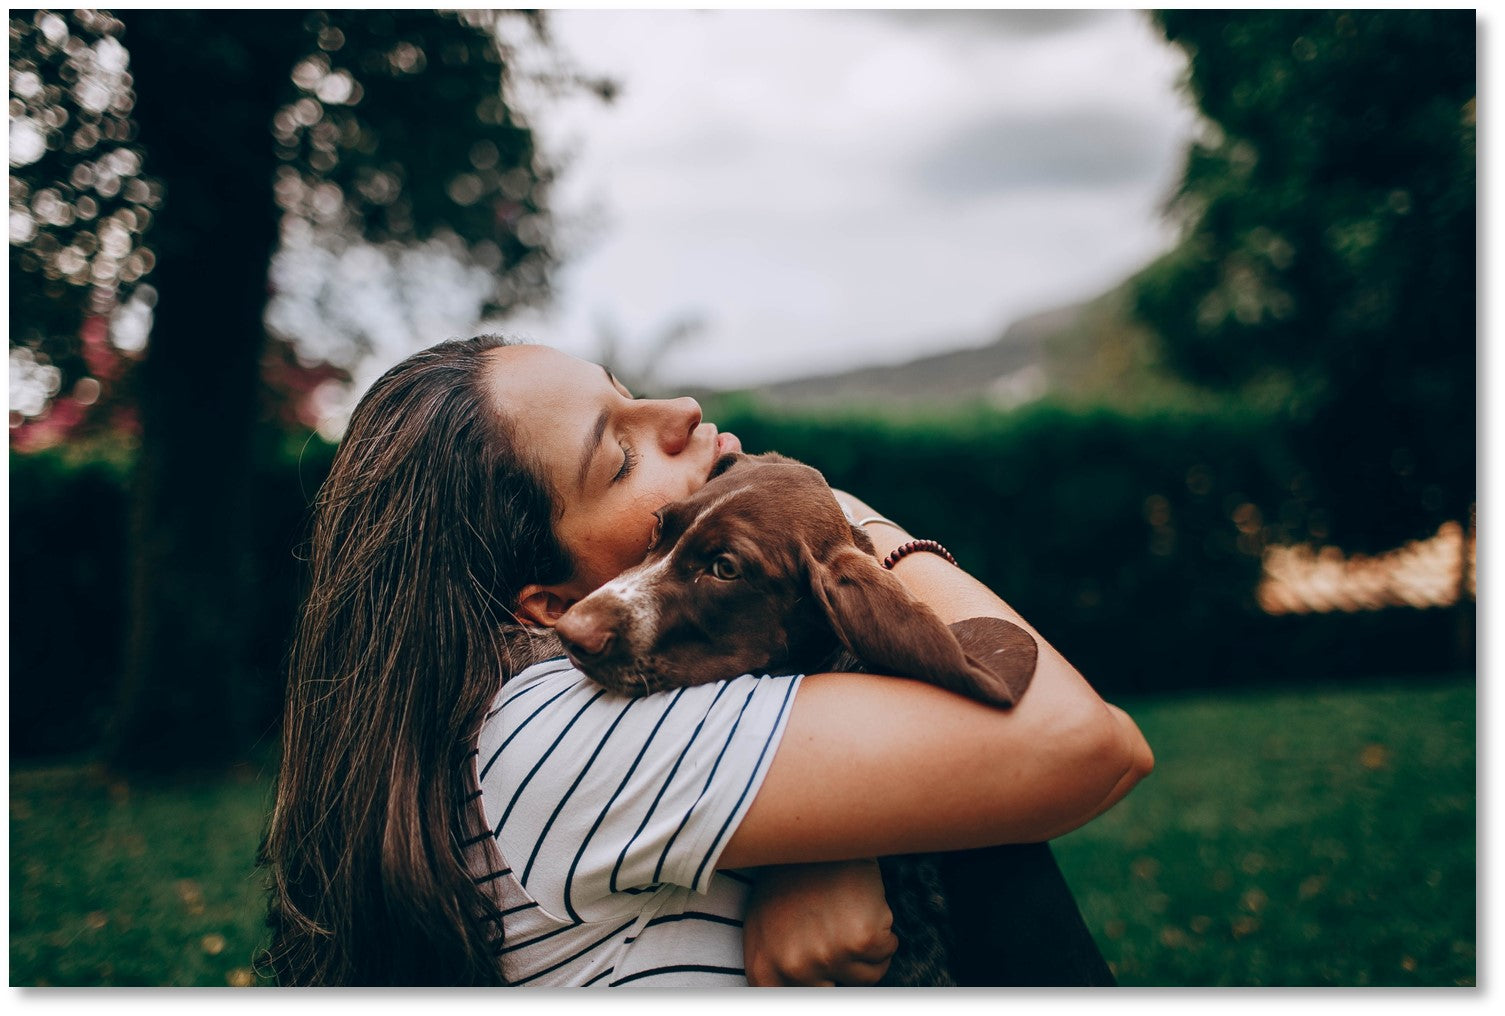 Penny Lou UK Blog   Bond With Your Dog - Person cuddling a dog